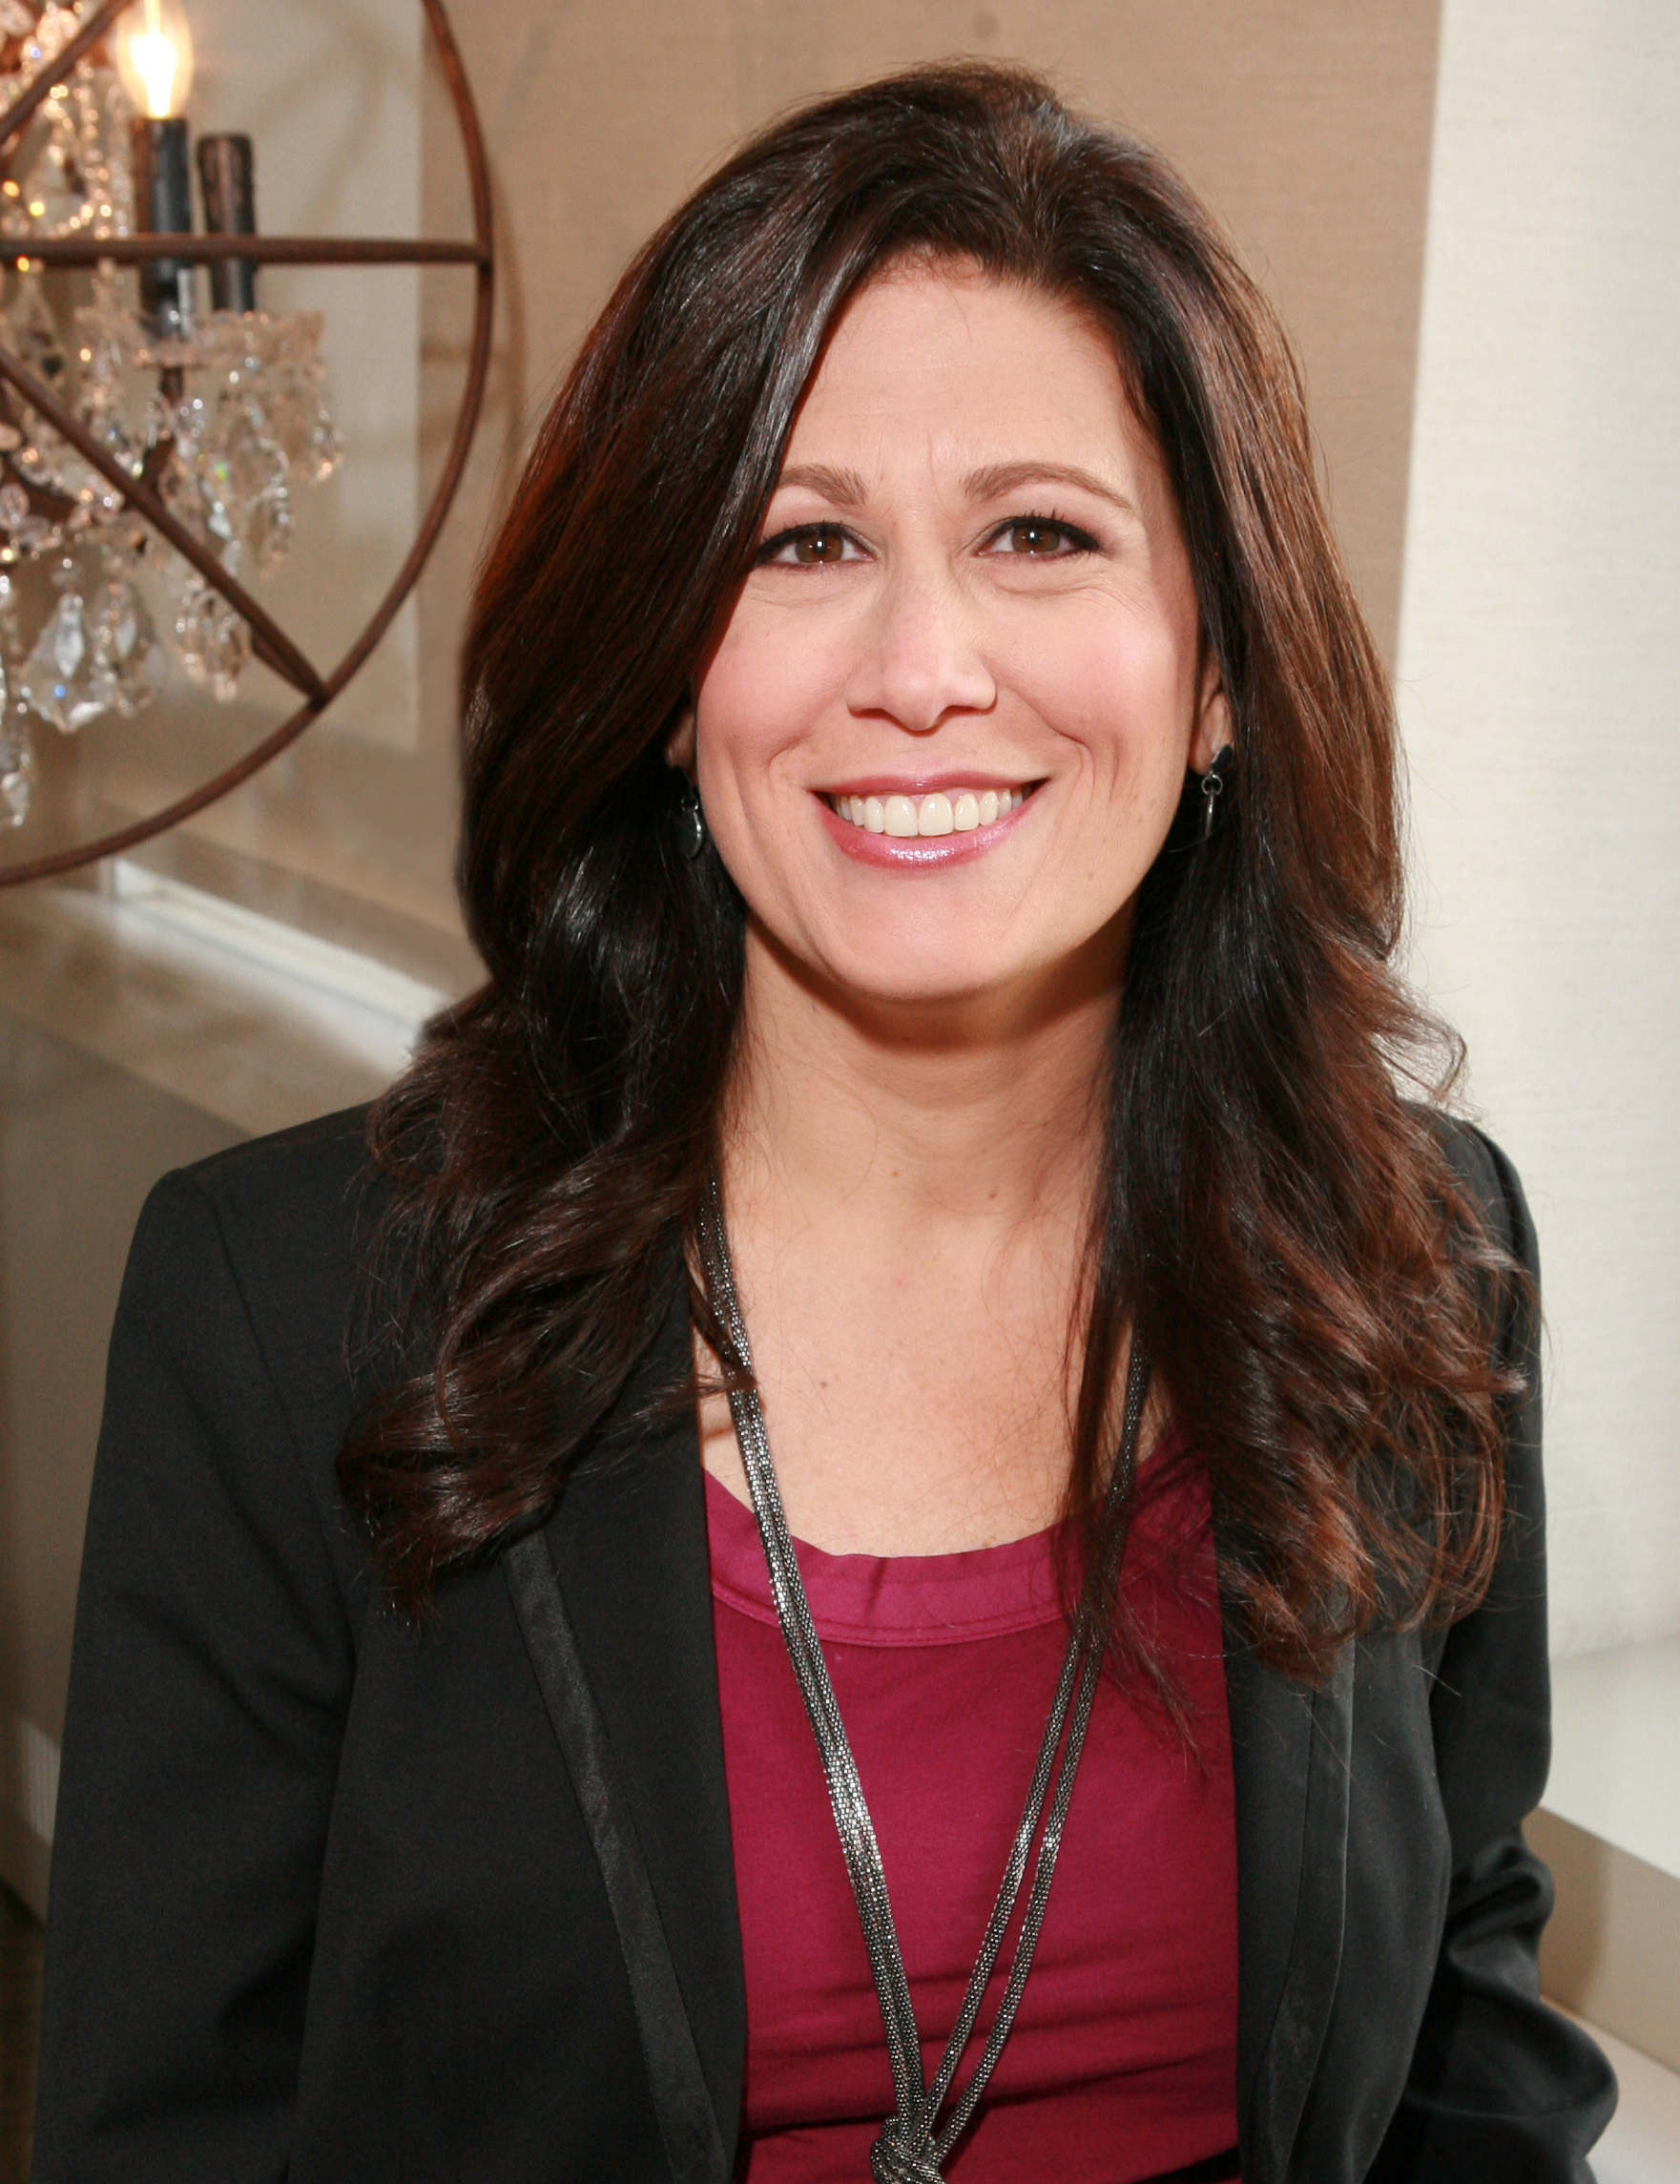 Michelle Tillis Lederman - CEO, Executive Essentials